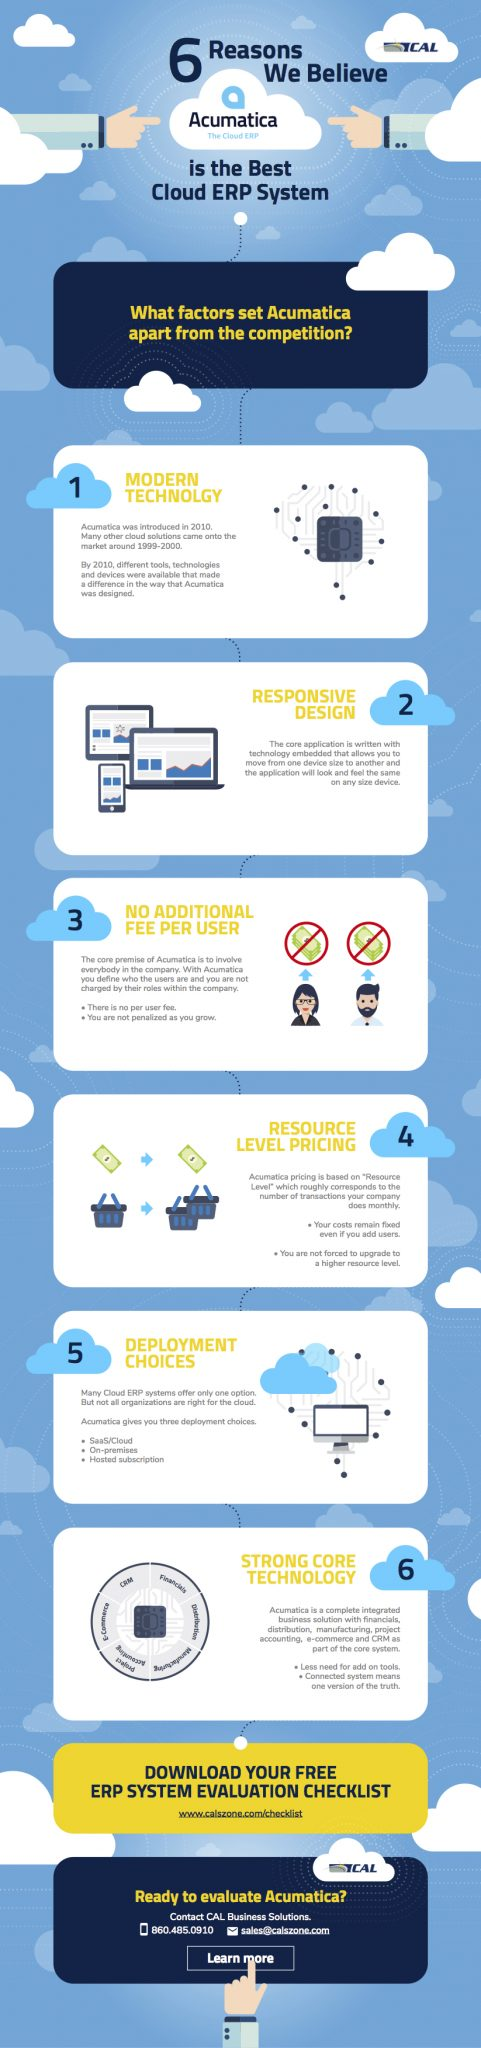 INFOGRAPHIC: 6 Reasons We Believe Acumatica is The Best Cloud ERP System